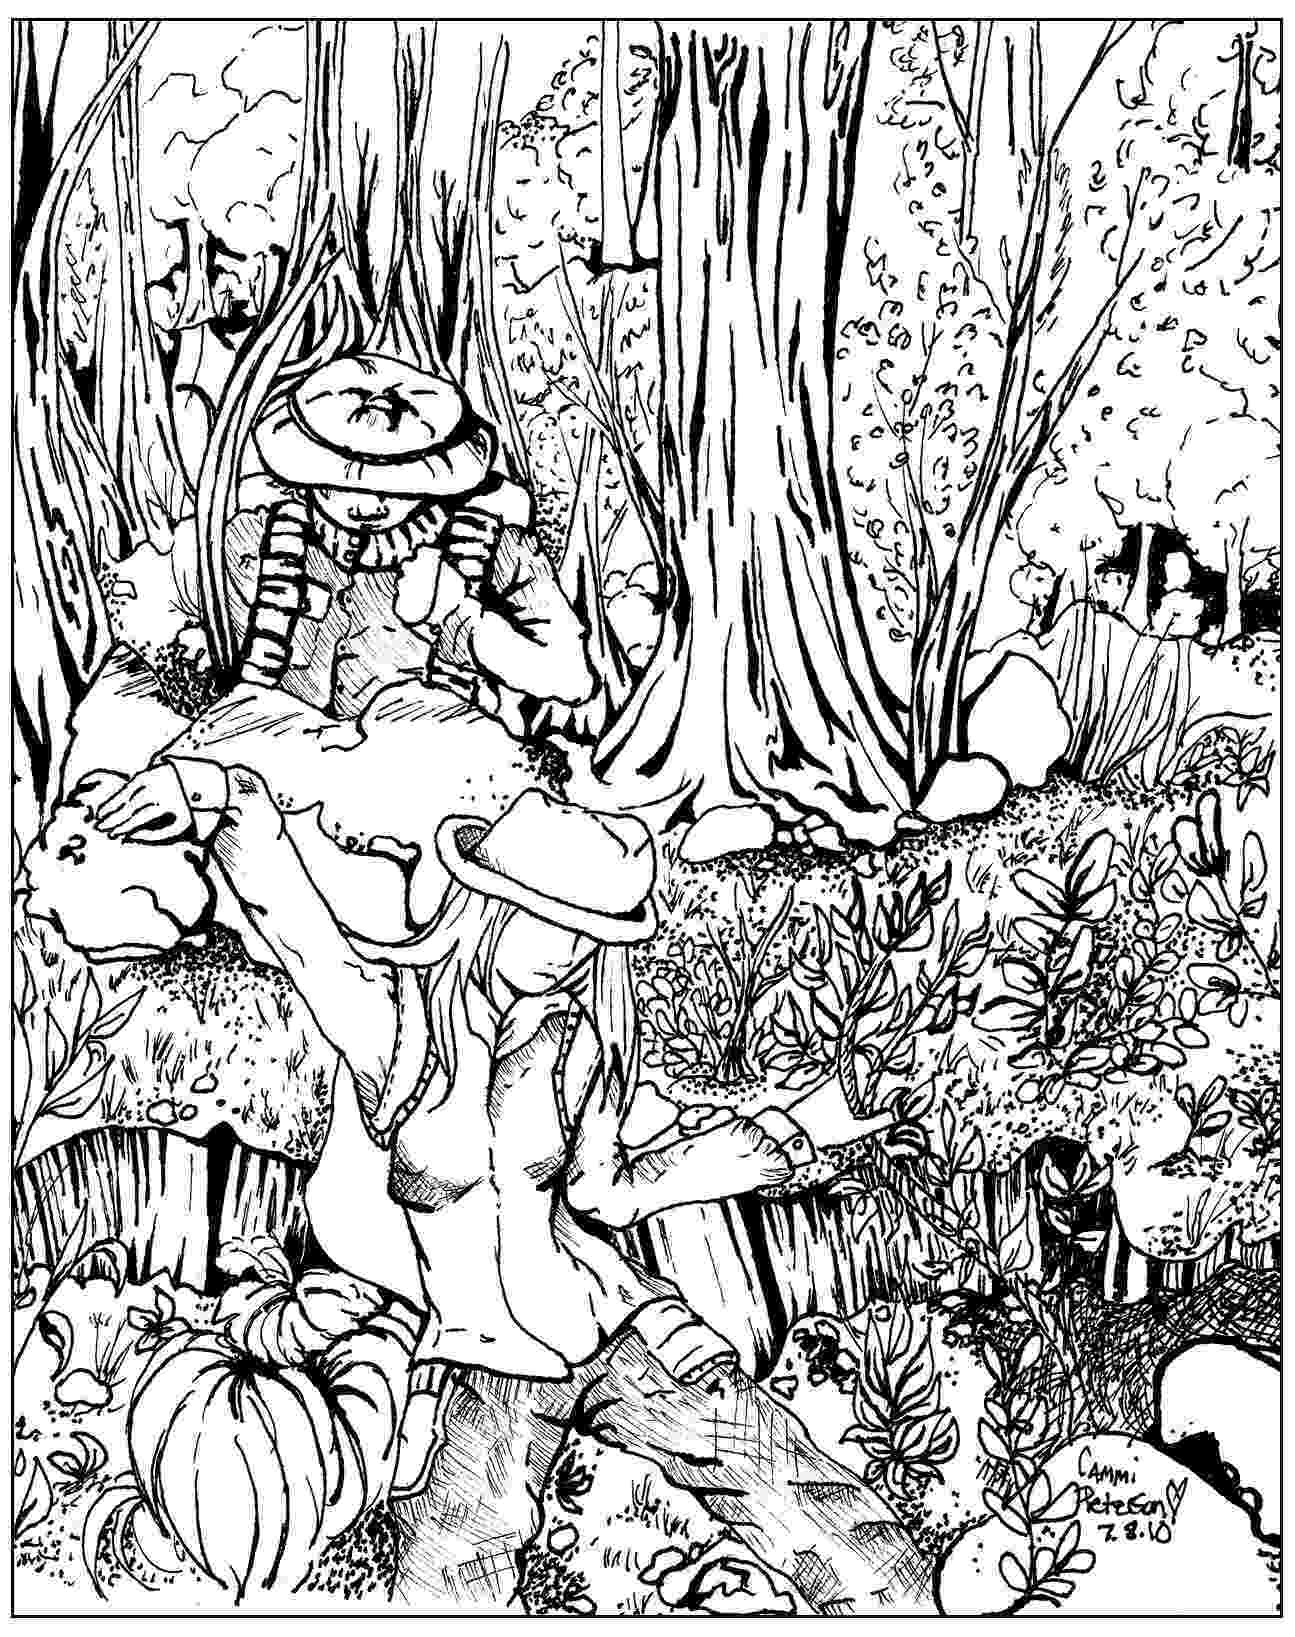 forest coloring sheets forest coloring pages download and print forest coloring forest coloring sheets 1 1